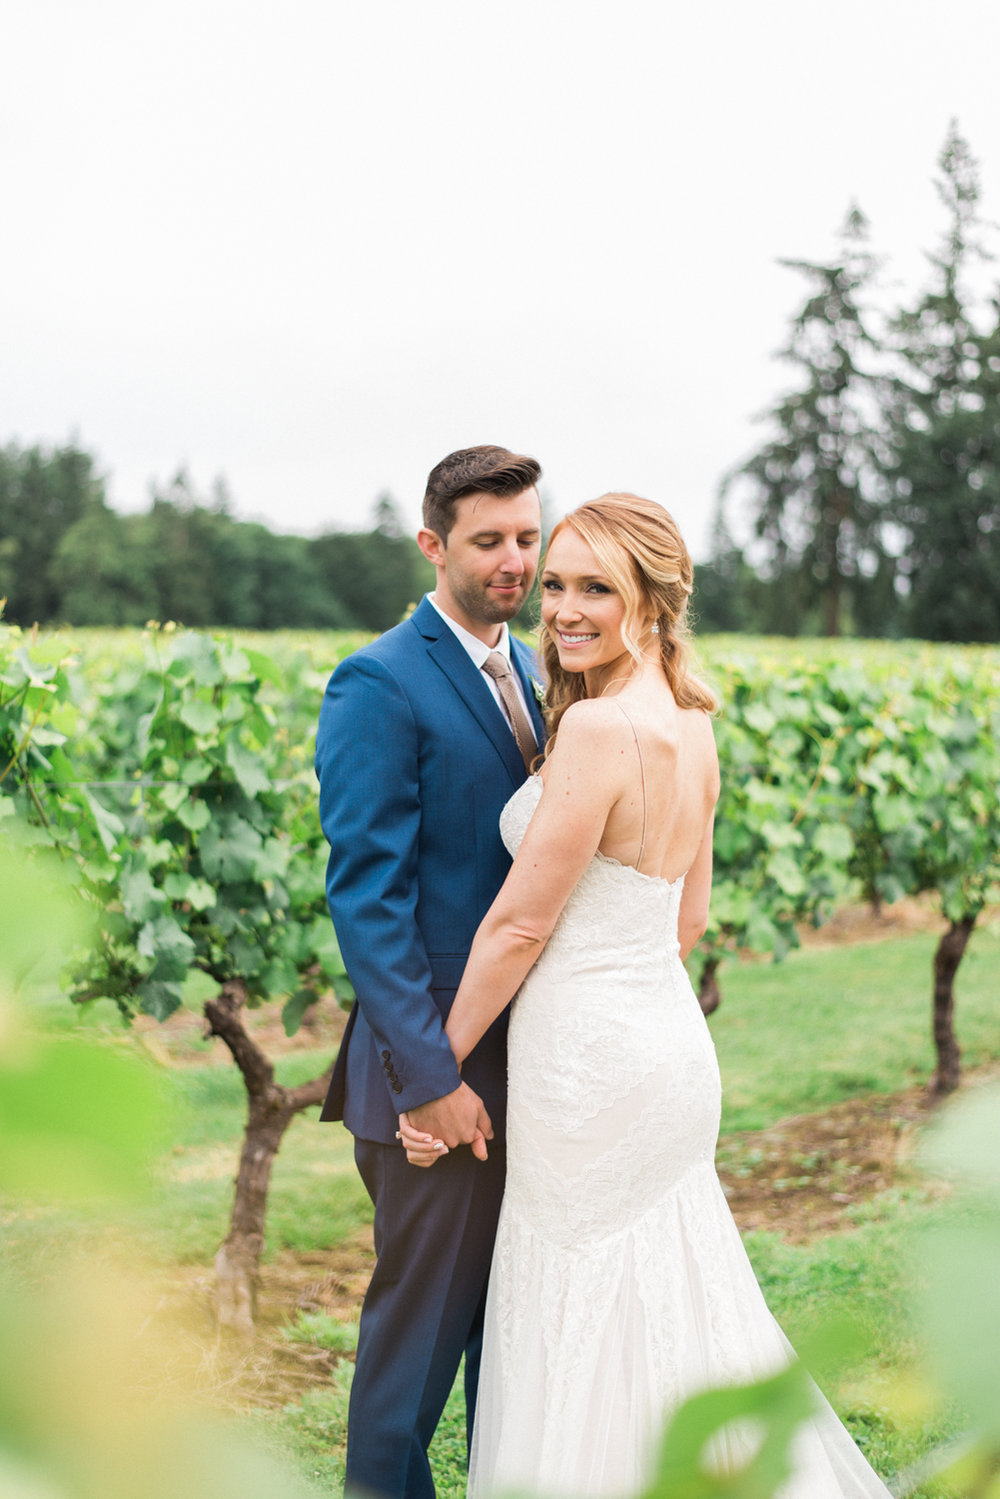 portland-wedding-photography-bethany-vineyard-shelley-marie-photo-018.jpg